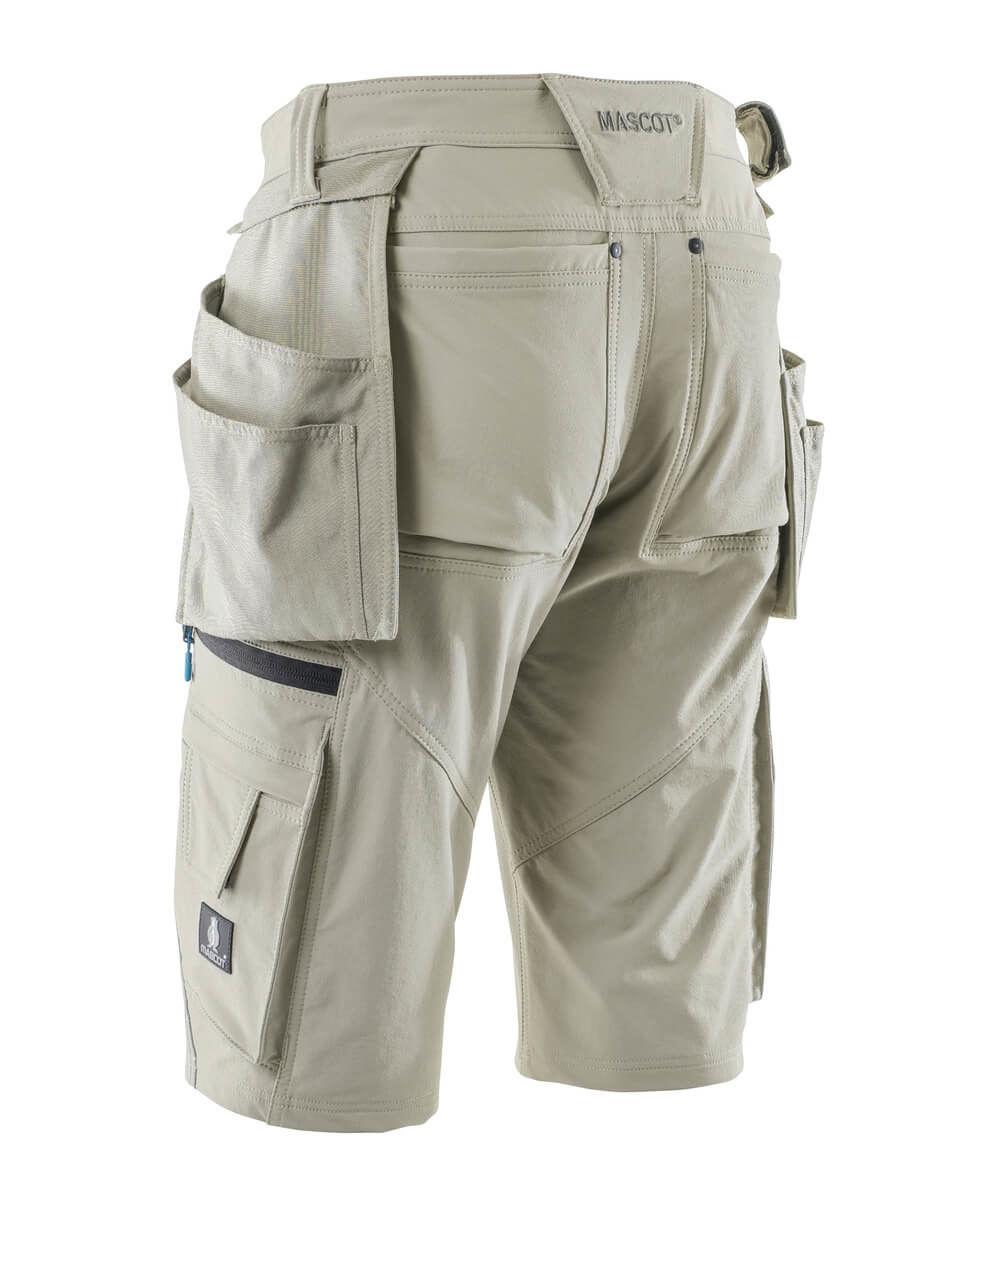 Shorts with detachable holster pockets